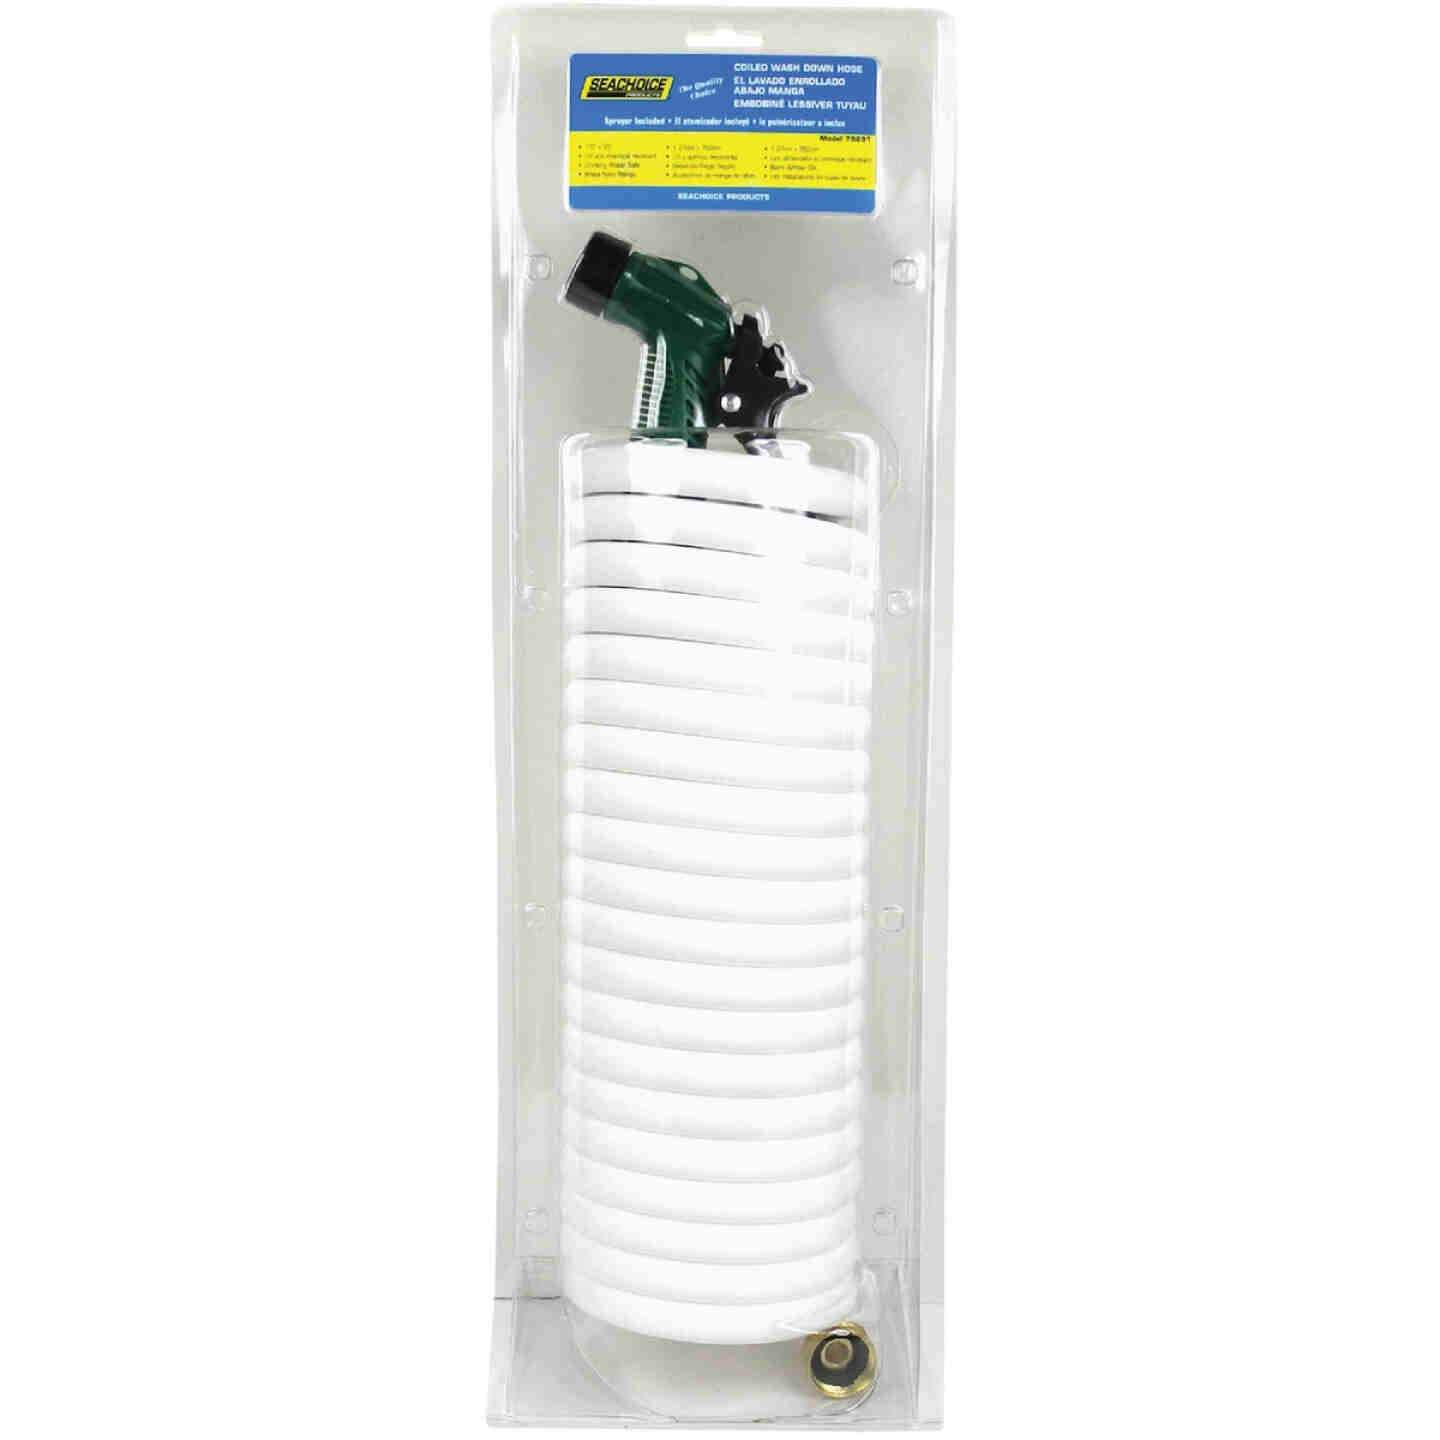 Seachoice 1/2 In. Dia x 25 Ft. L White Coiled Washdown Hose w/Sprayer and Fittings Image 1